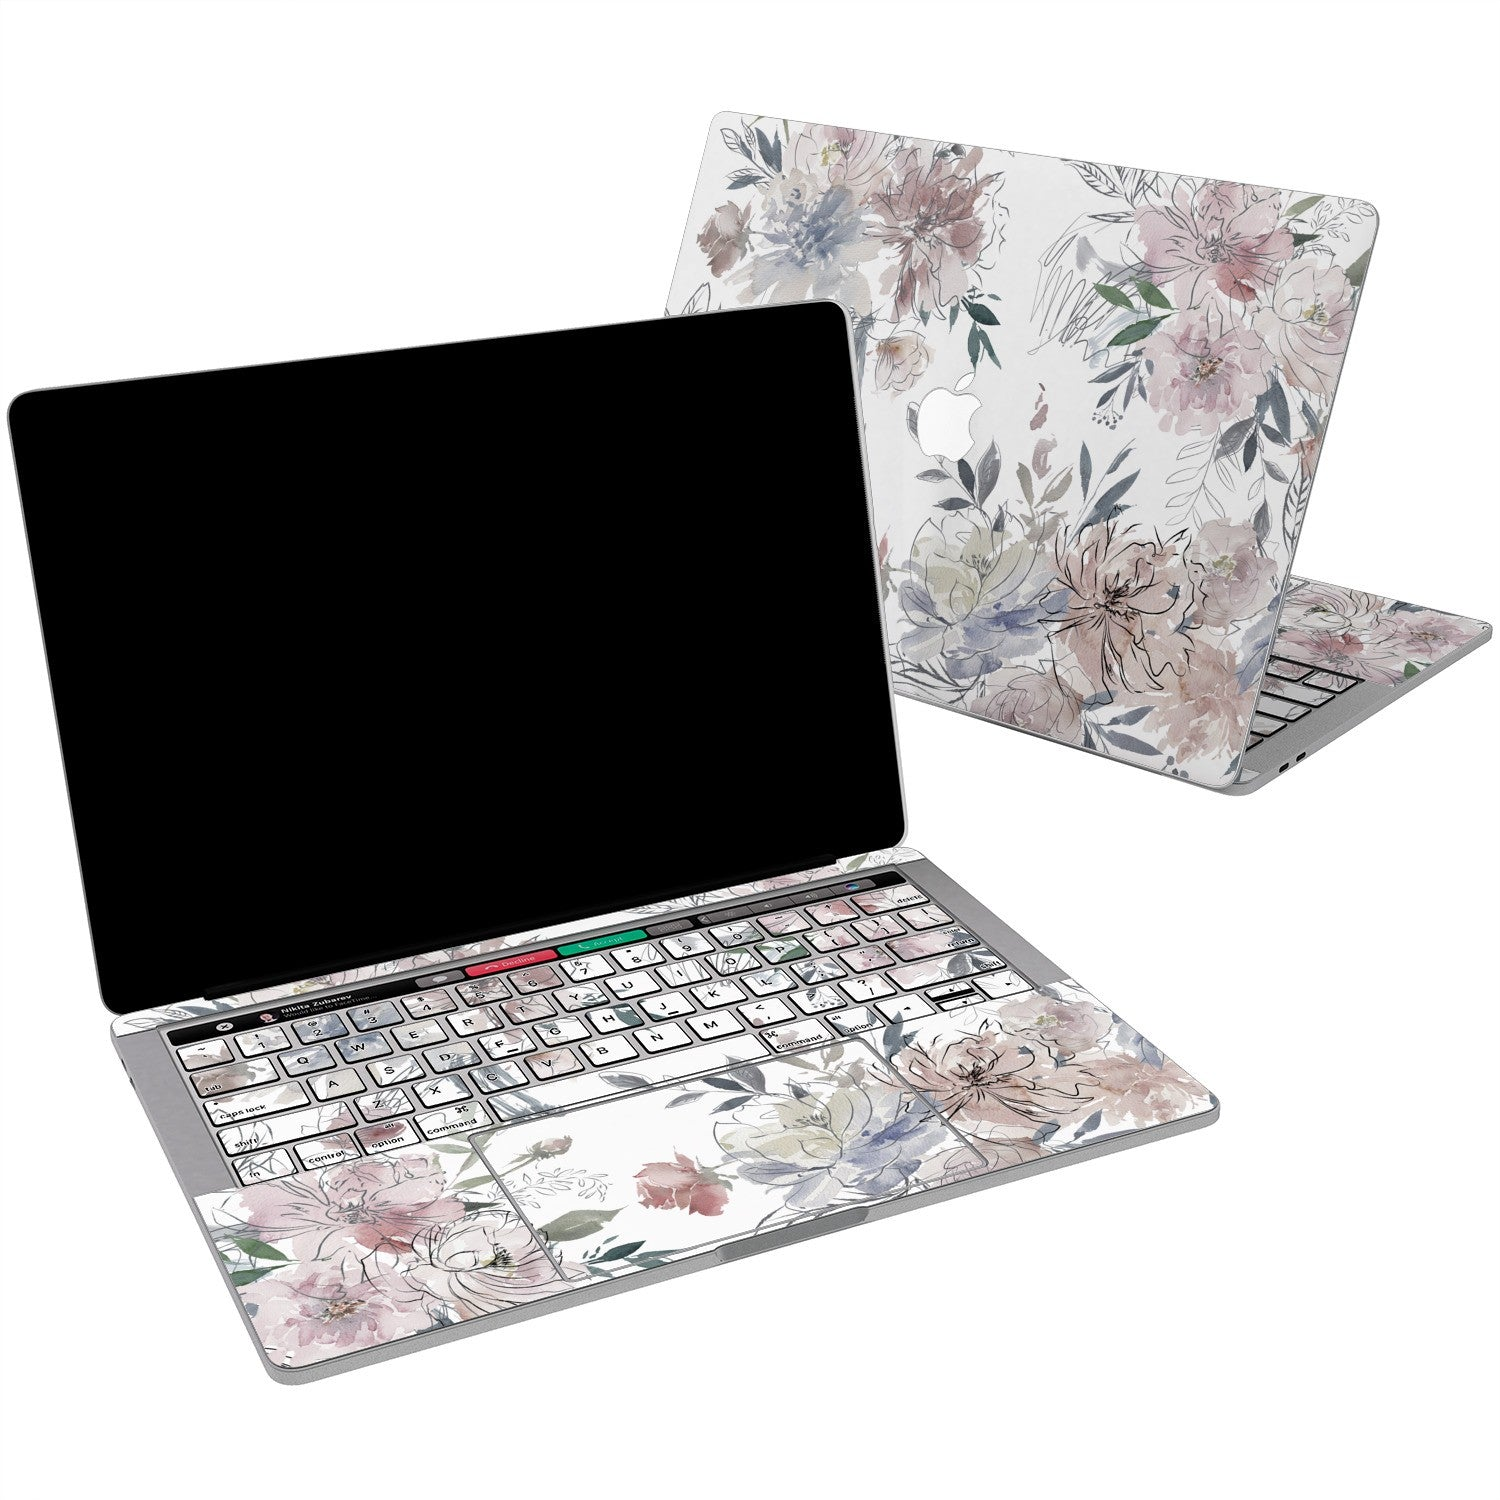 Lex Altern Vinyl MacBook Skin Painted Flowers for your Laptop Apple Macbook.